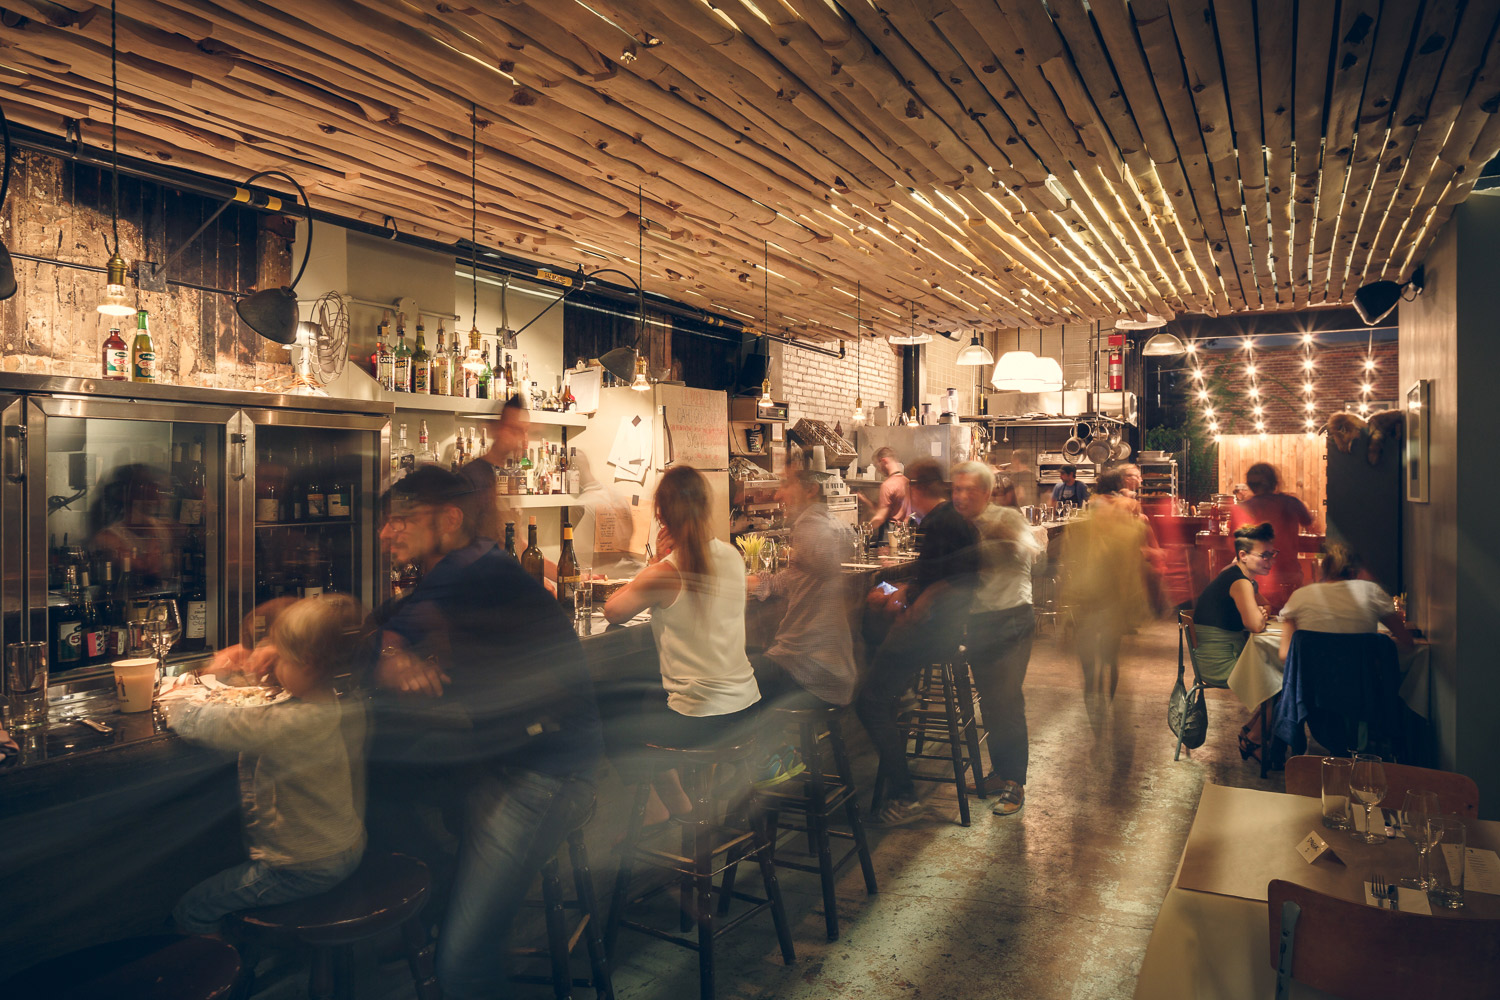 Customers sitting at the bar. The ceiling covered with white cedar without bark shows a shower light. The original walls and concrete floor give an industrial look to the place